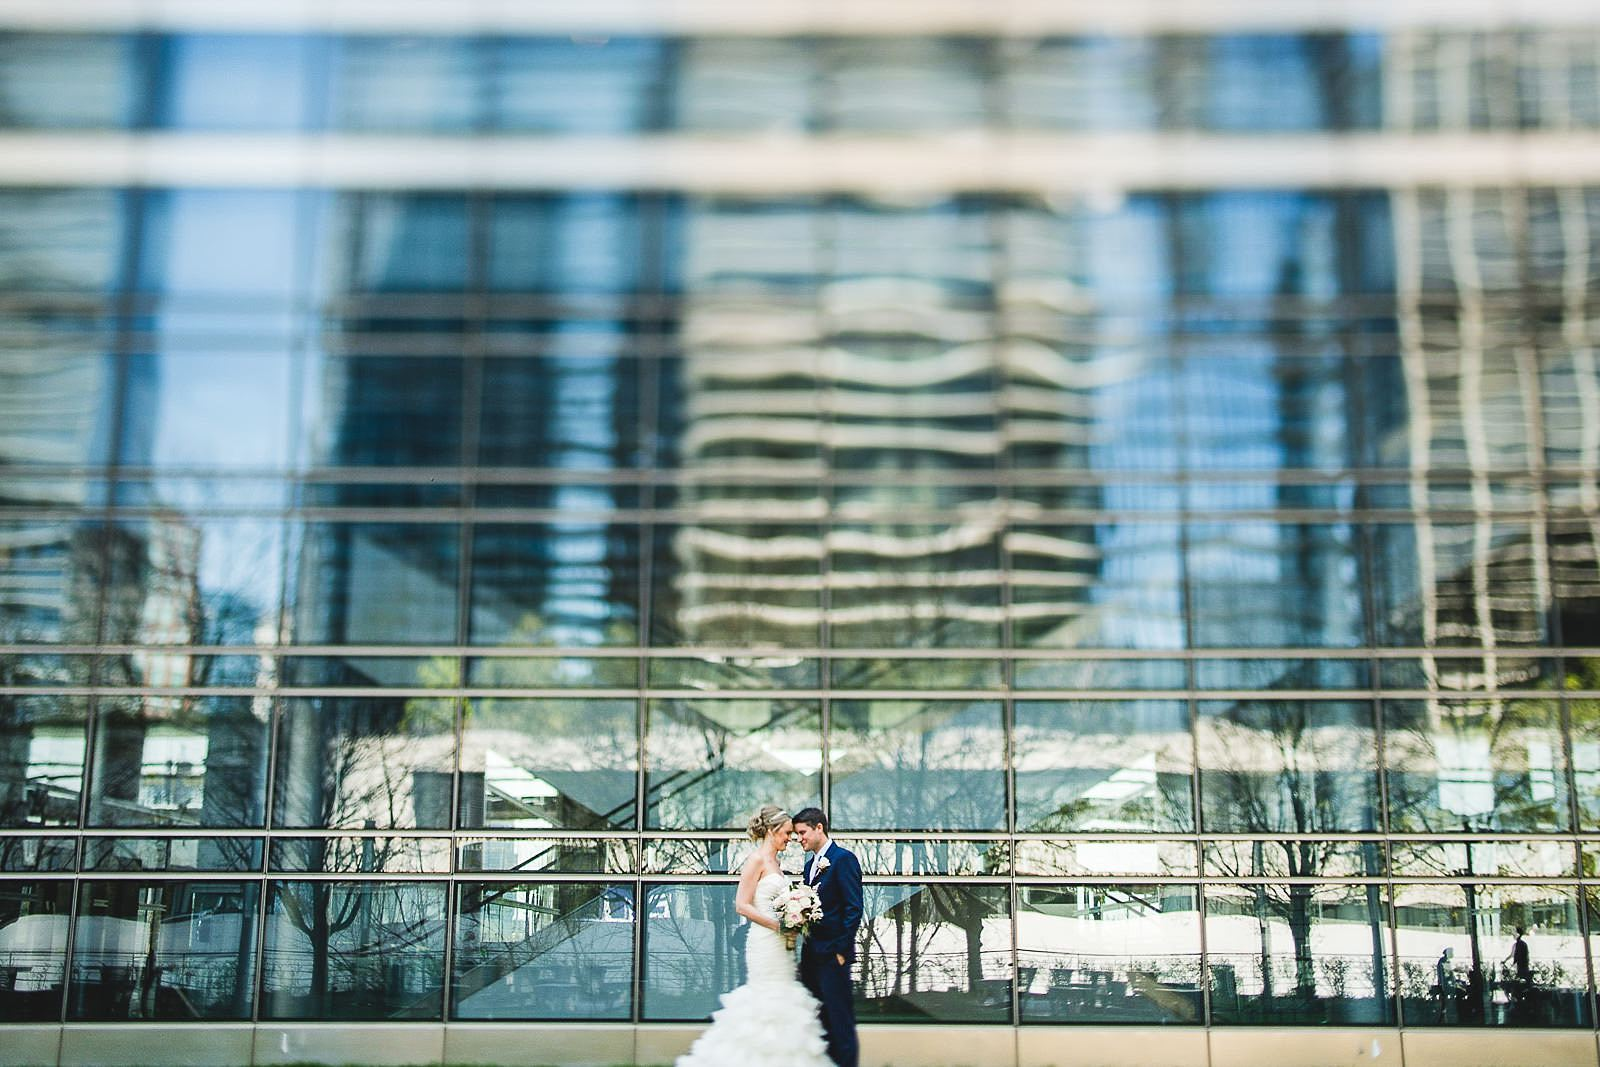 20 creative wedding photos chicago - Mid America Club Wedding Photography / Hannah + Jay